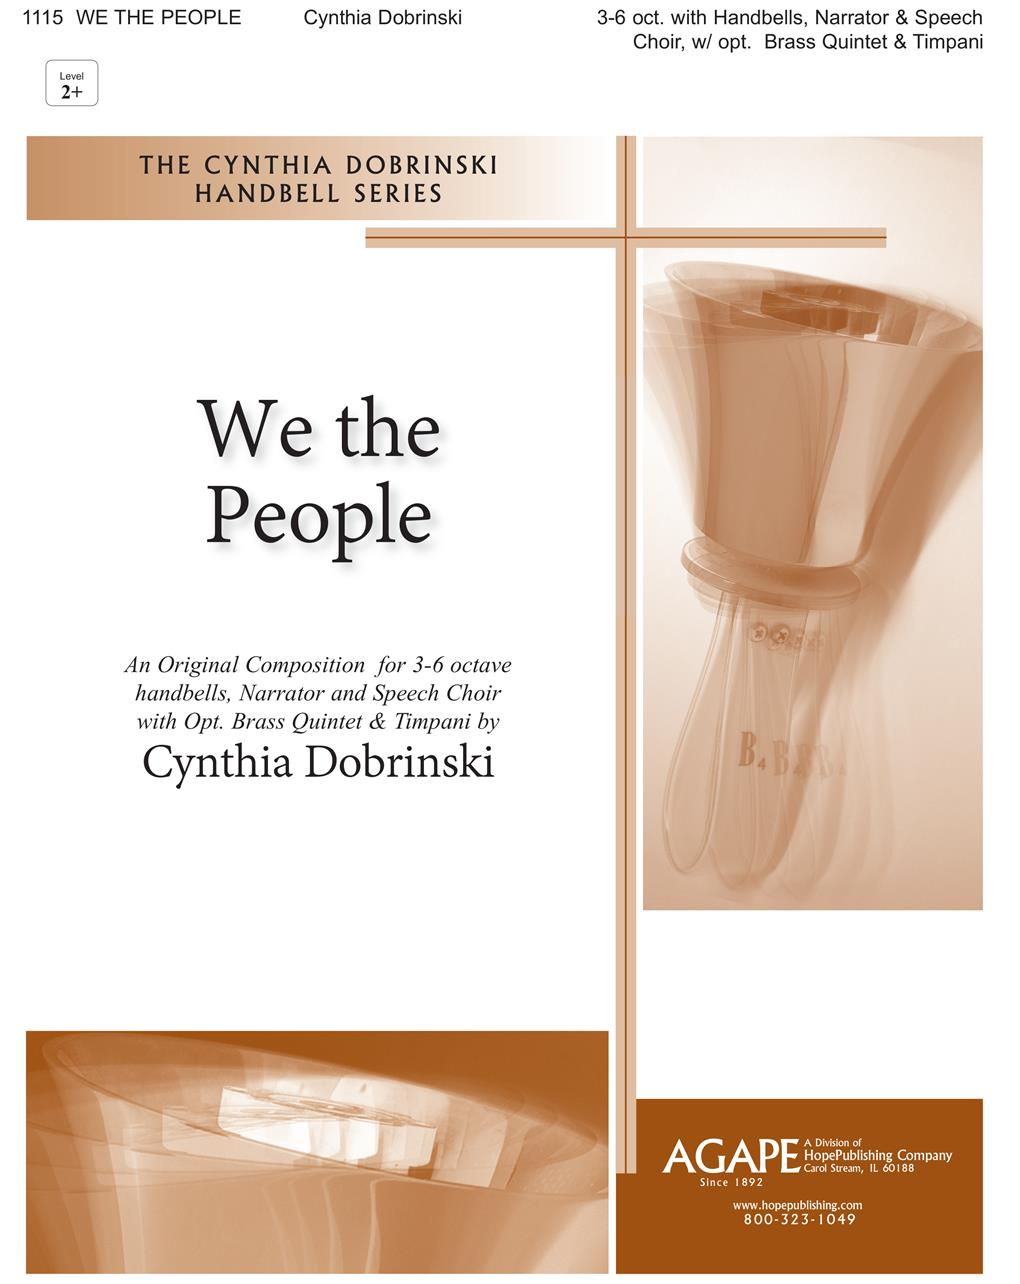 We the People - 3-6 Oct. Cover Image